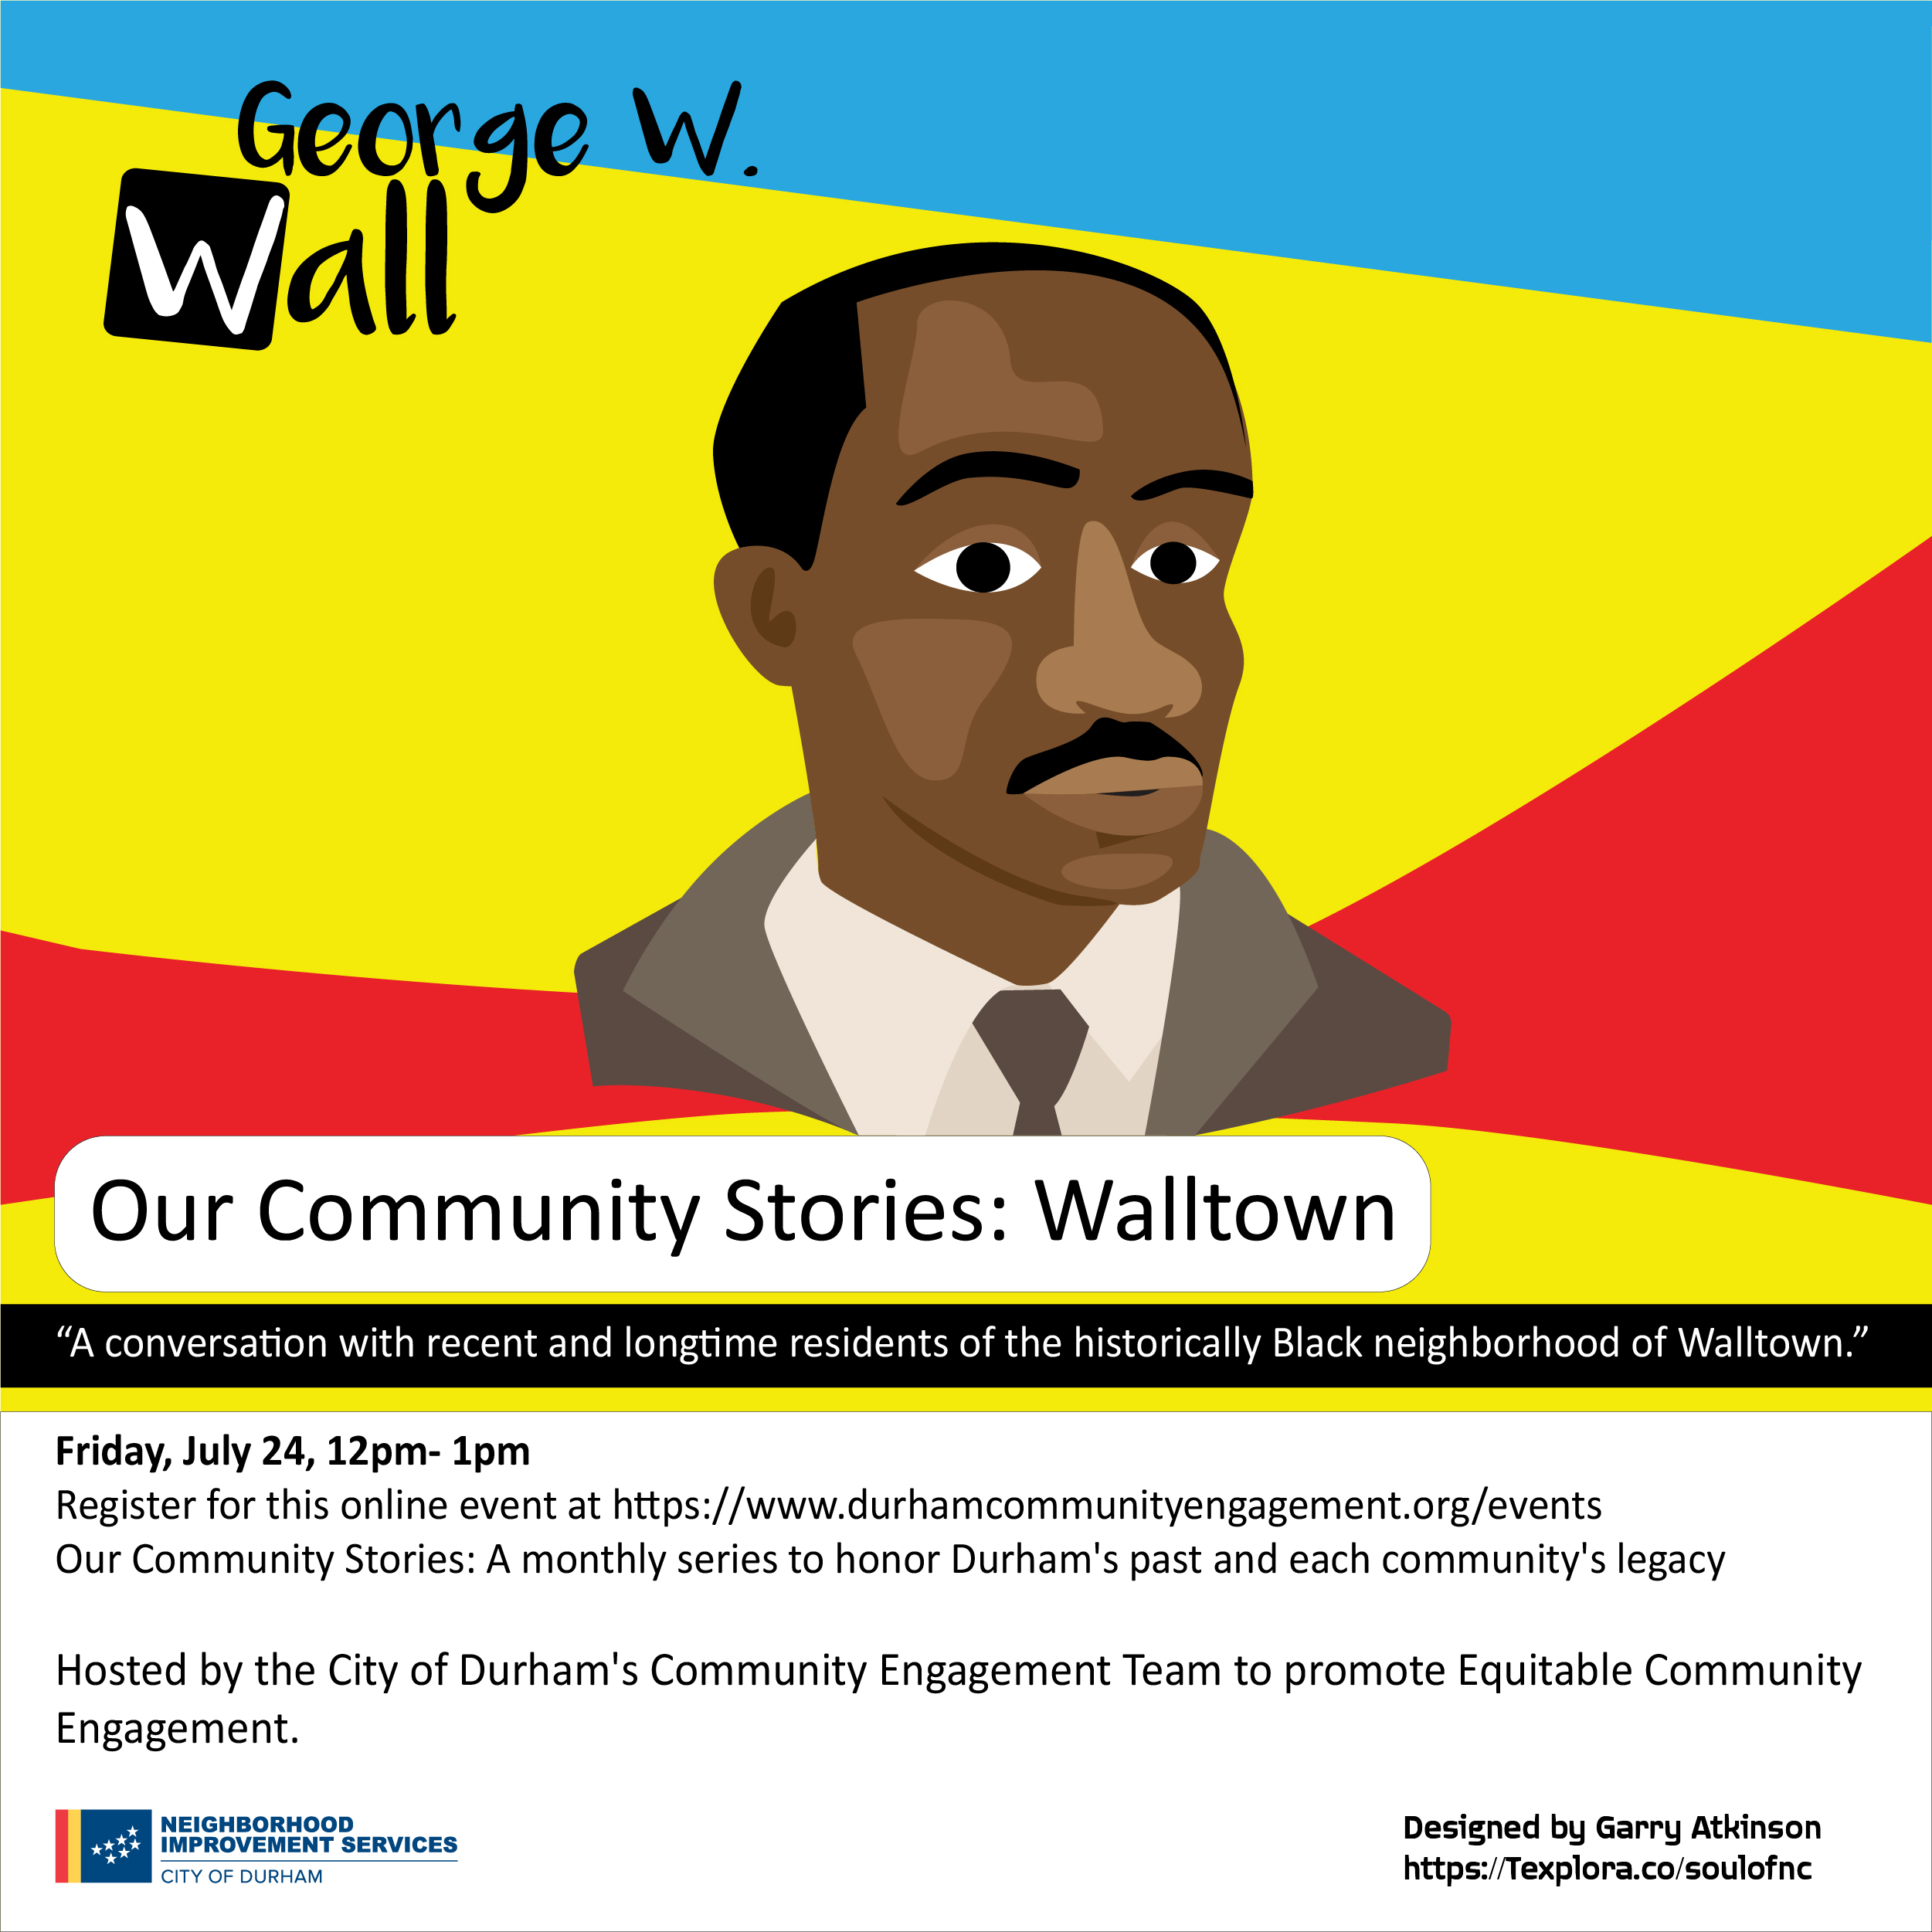 Our_Community_Stories-Walltown_Flyer_2020-07-10_Email.jpg